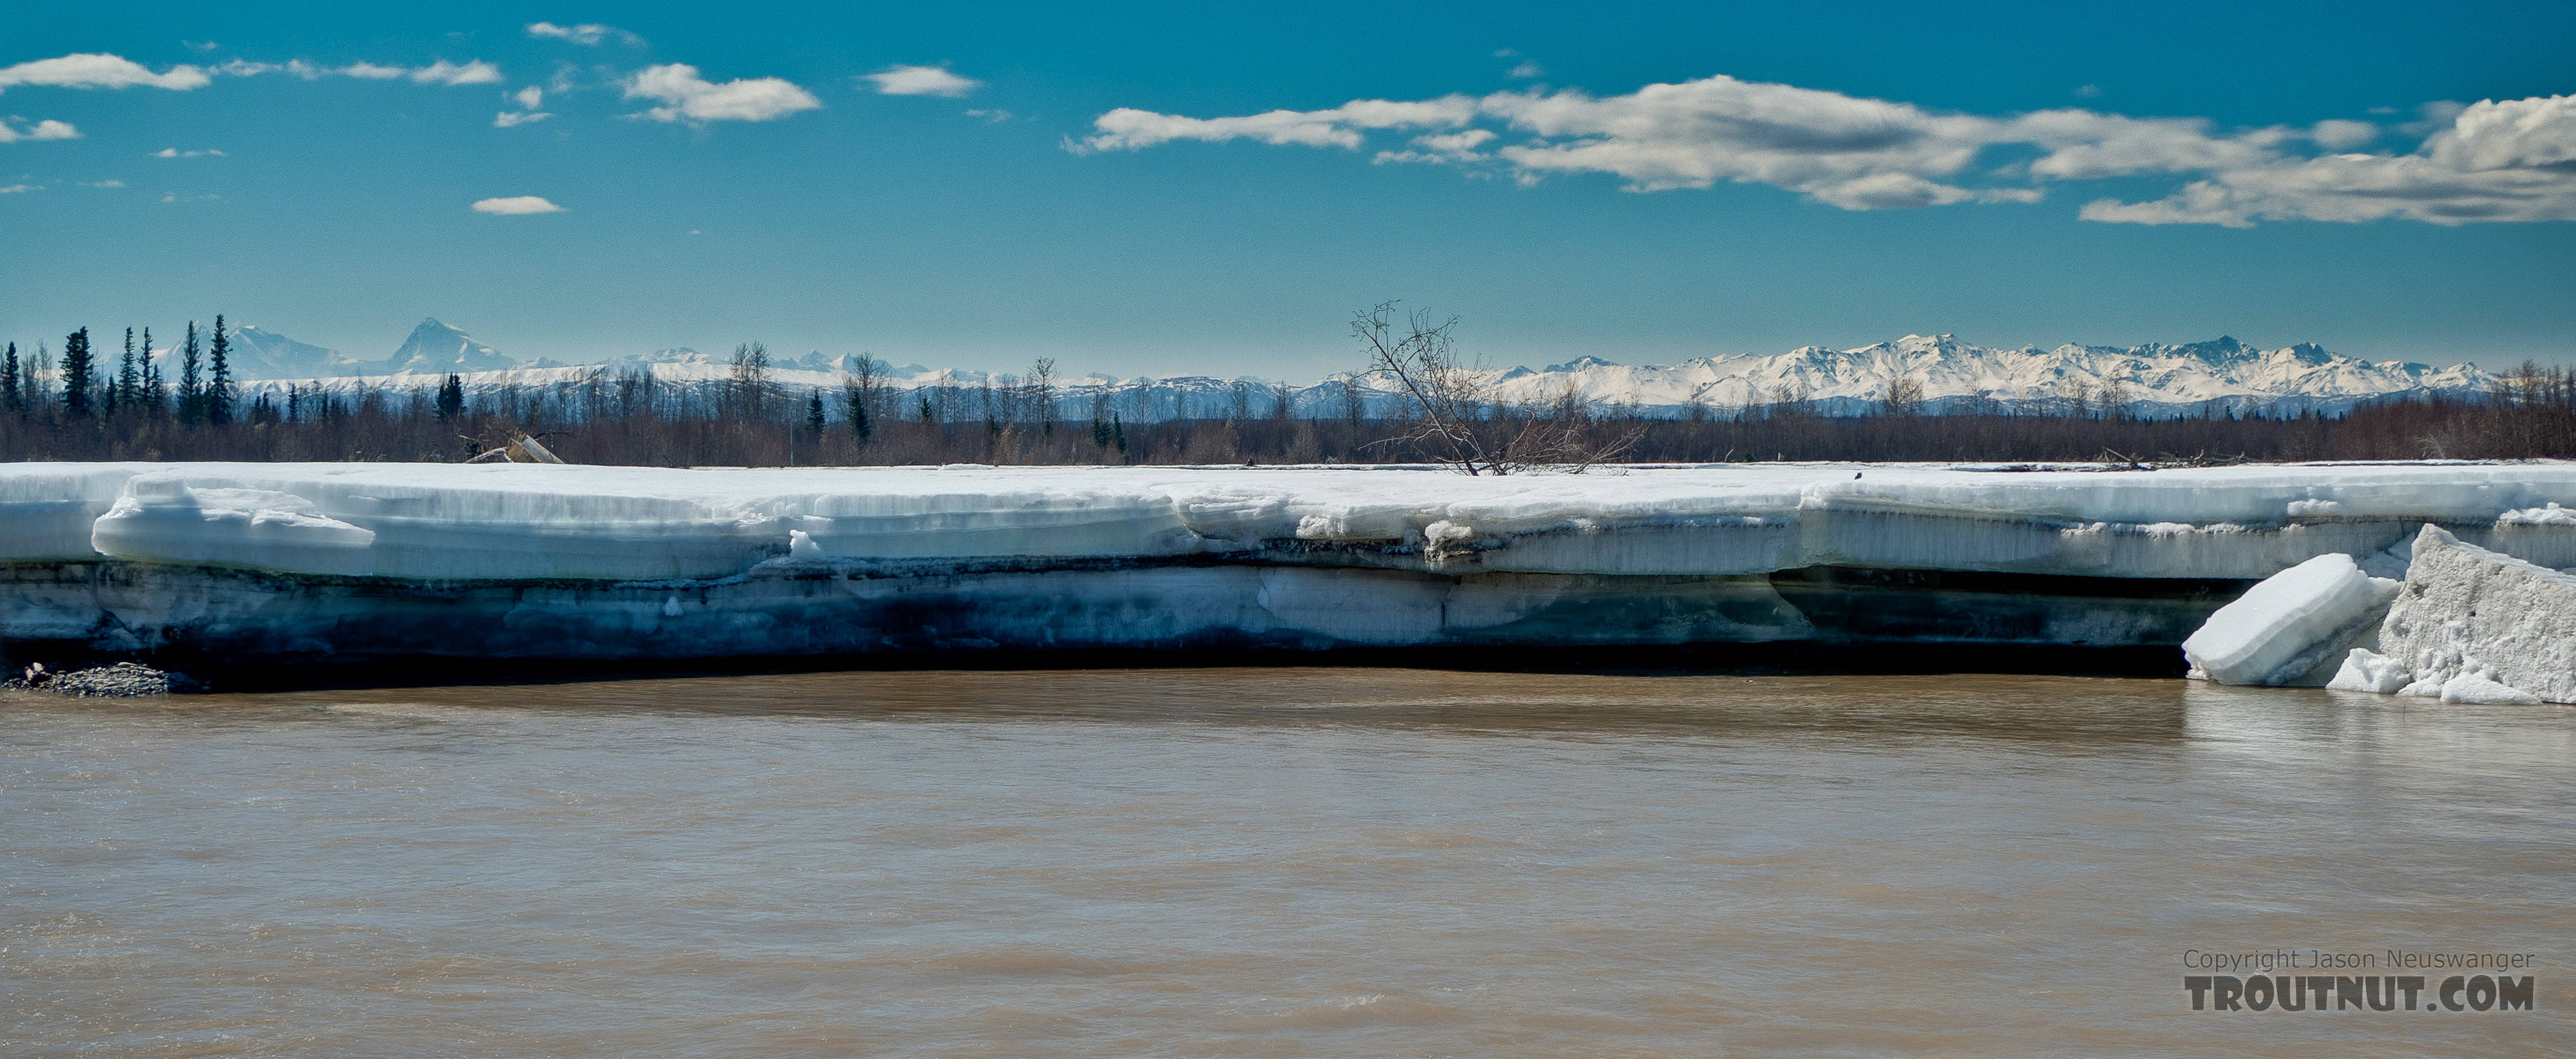 The Tanana still has some big chunks of ice overlaying the gravel bars in many areas. From the Tanana River in Alaska.